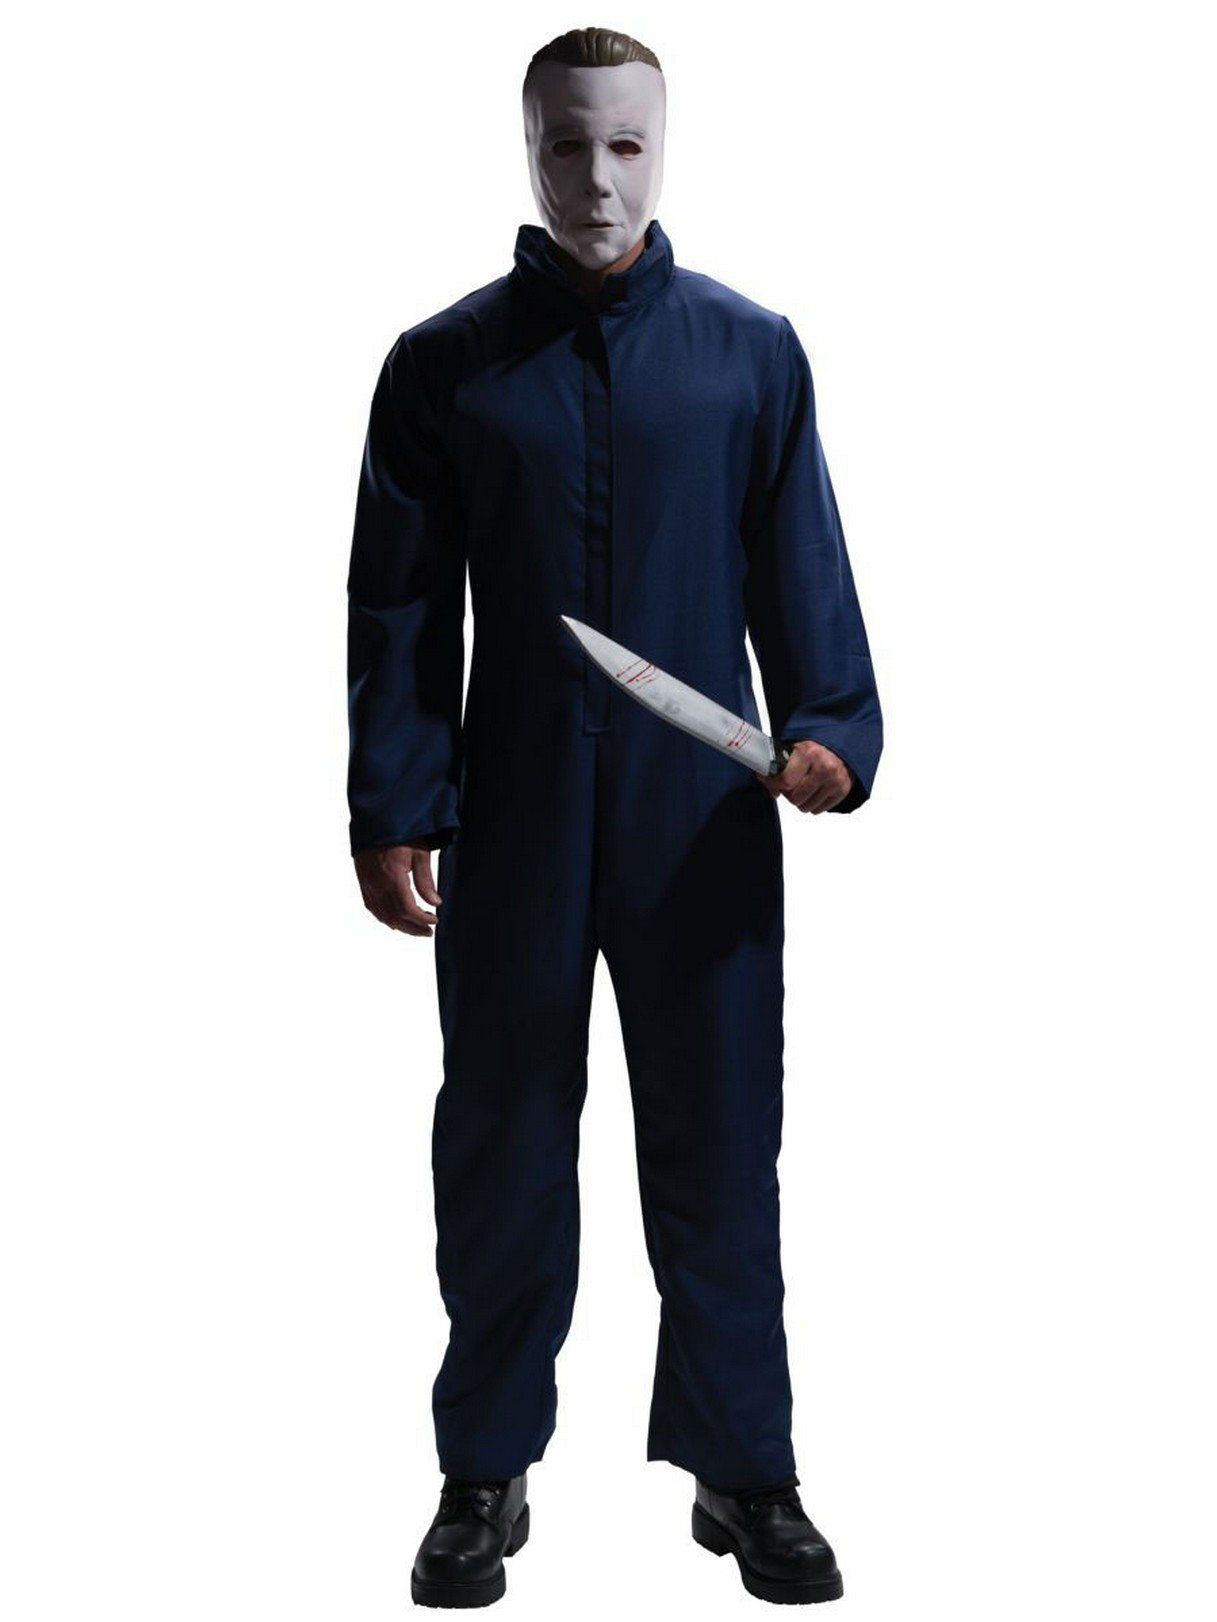 Halloween Michael Myers Costume.Michael Myers Adult Costume Mens Costumes For 2018 Wholesale